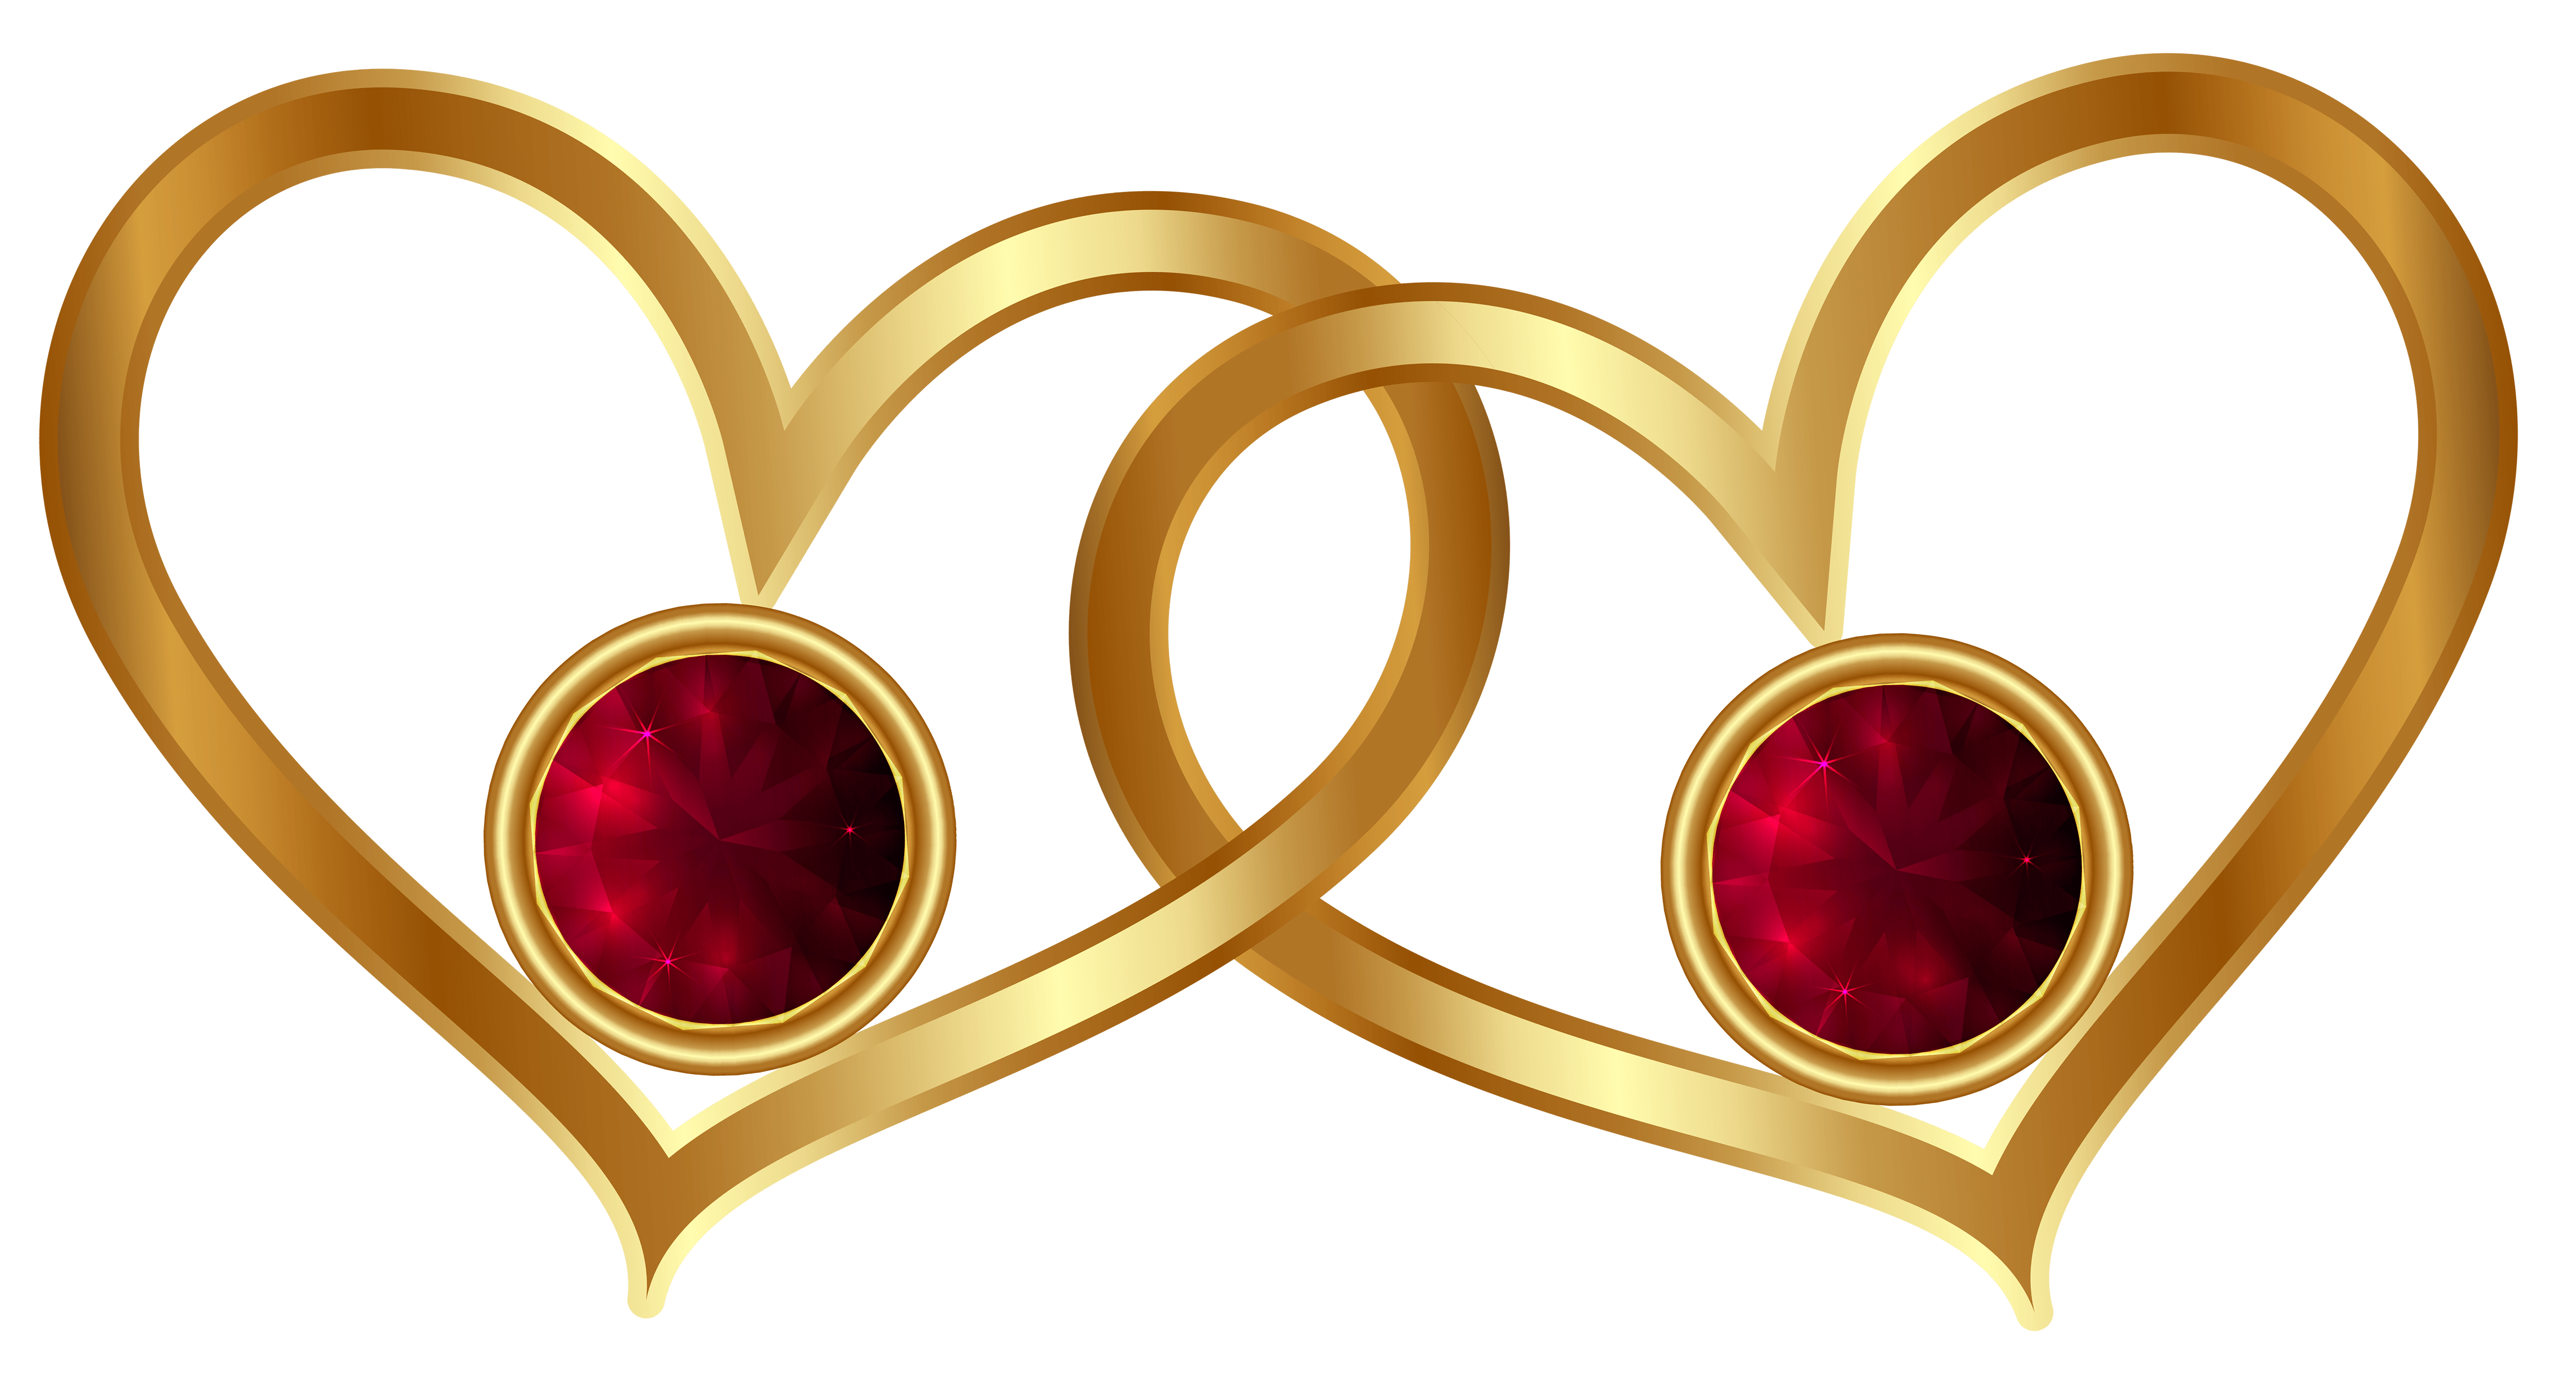 Golden Hearts with Red Diamonds PNG clipart